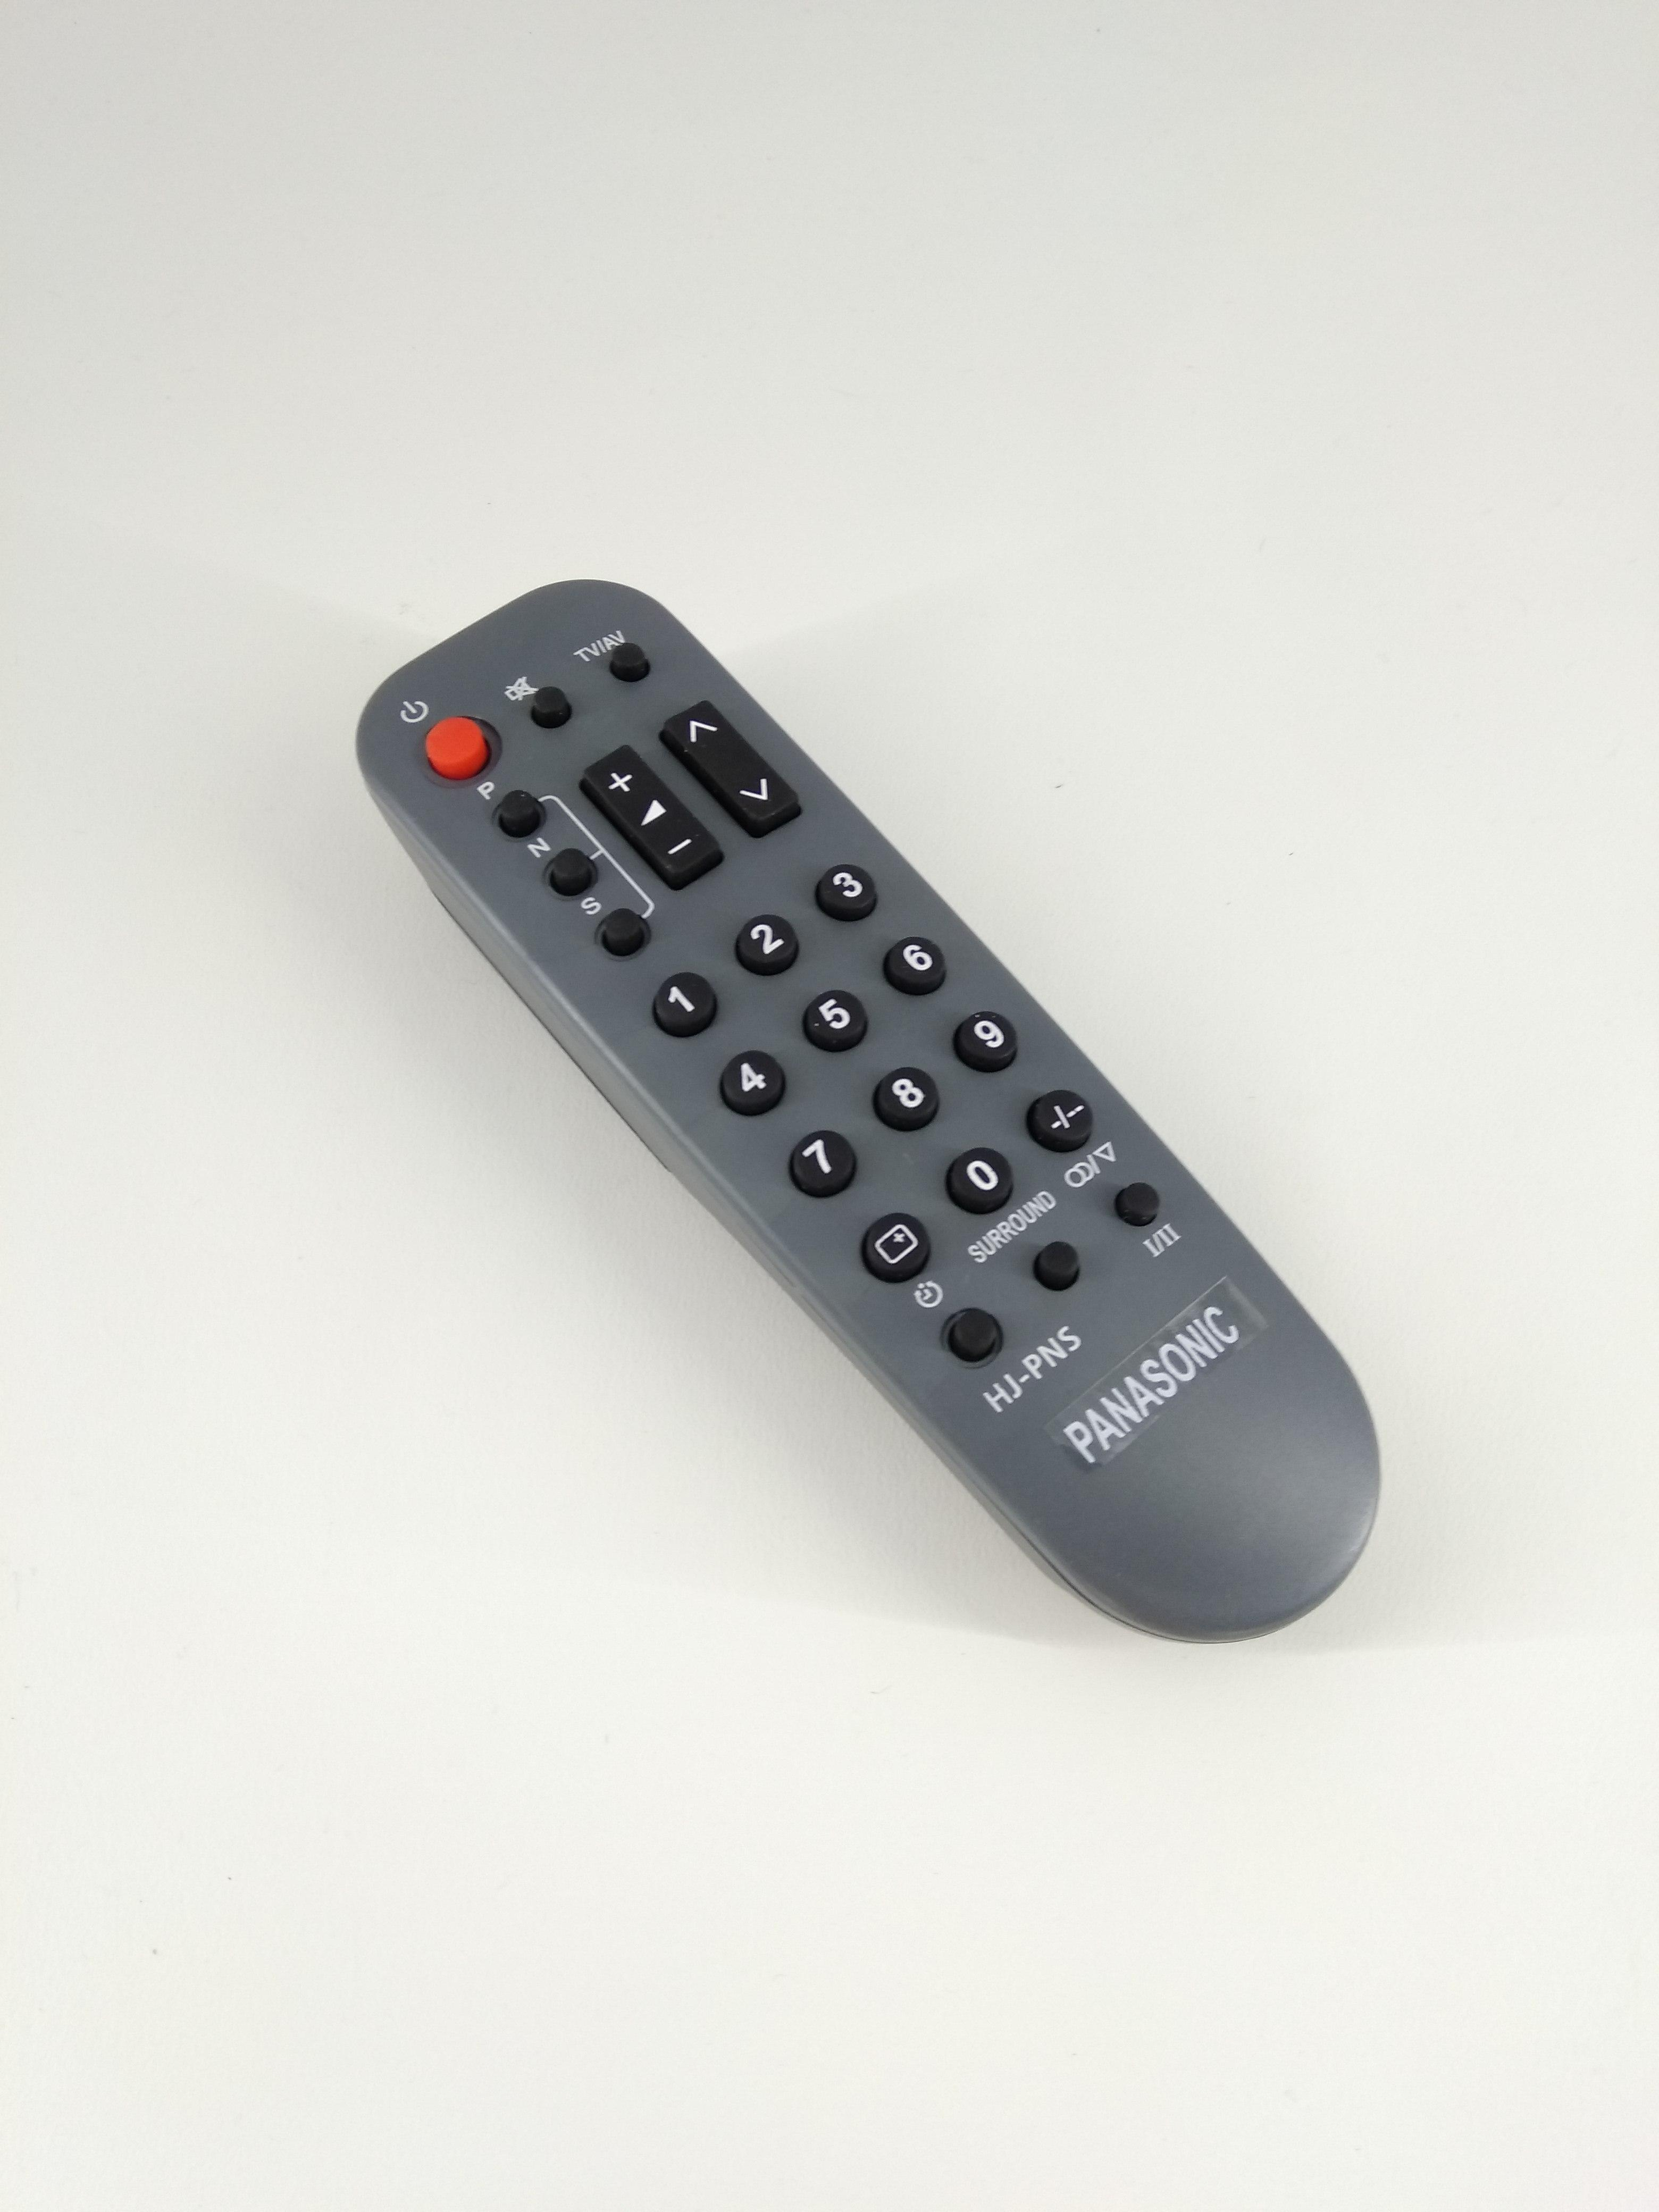 Remot Remote TV Panasonic Tabung Original Pabrik / KW (Grey)